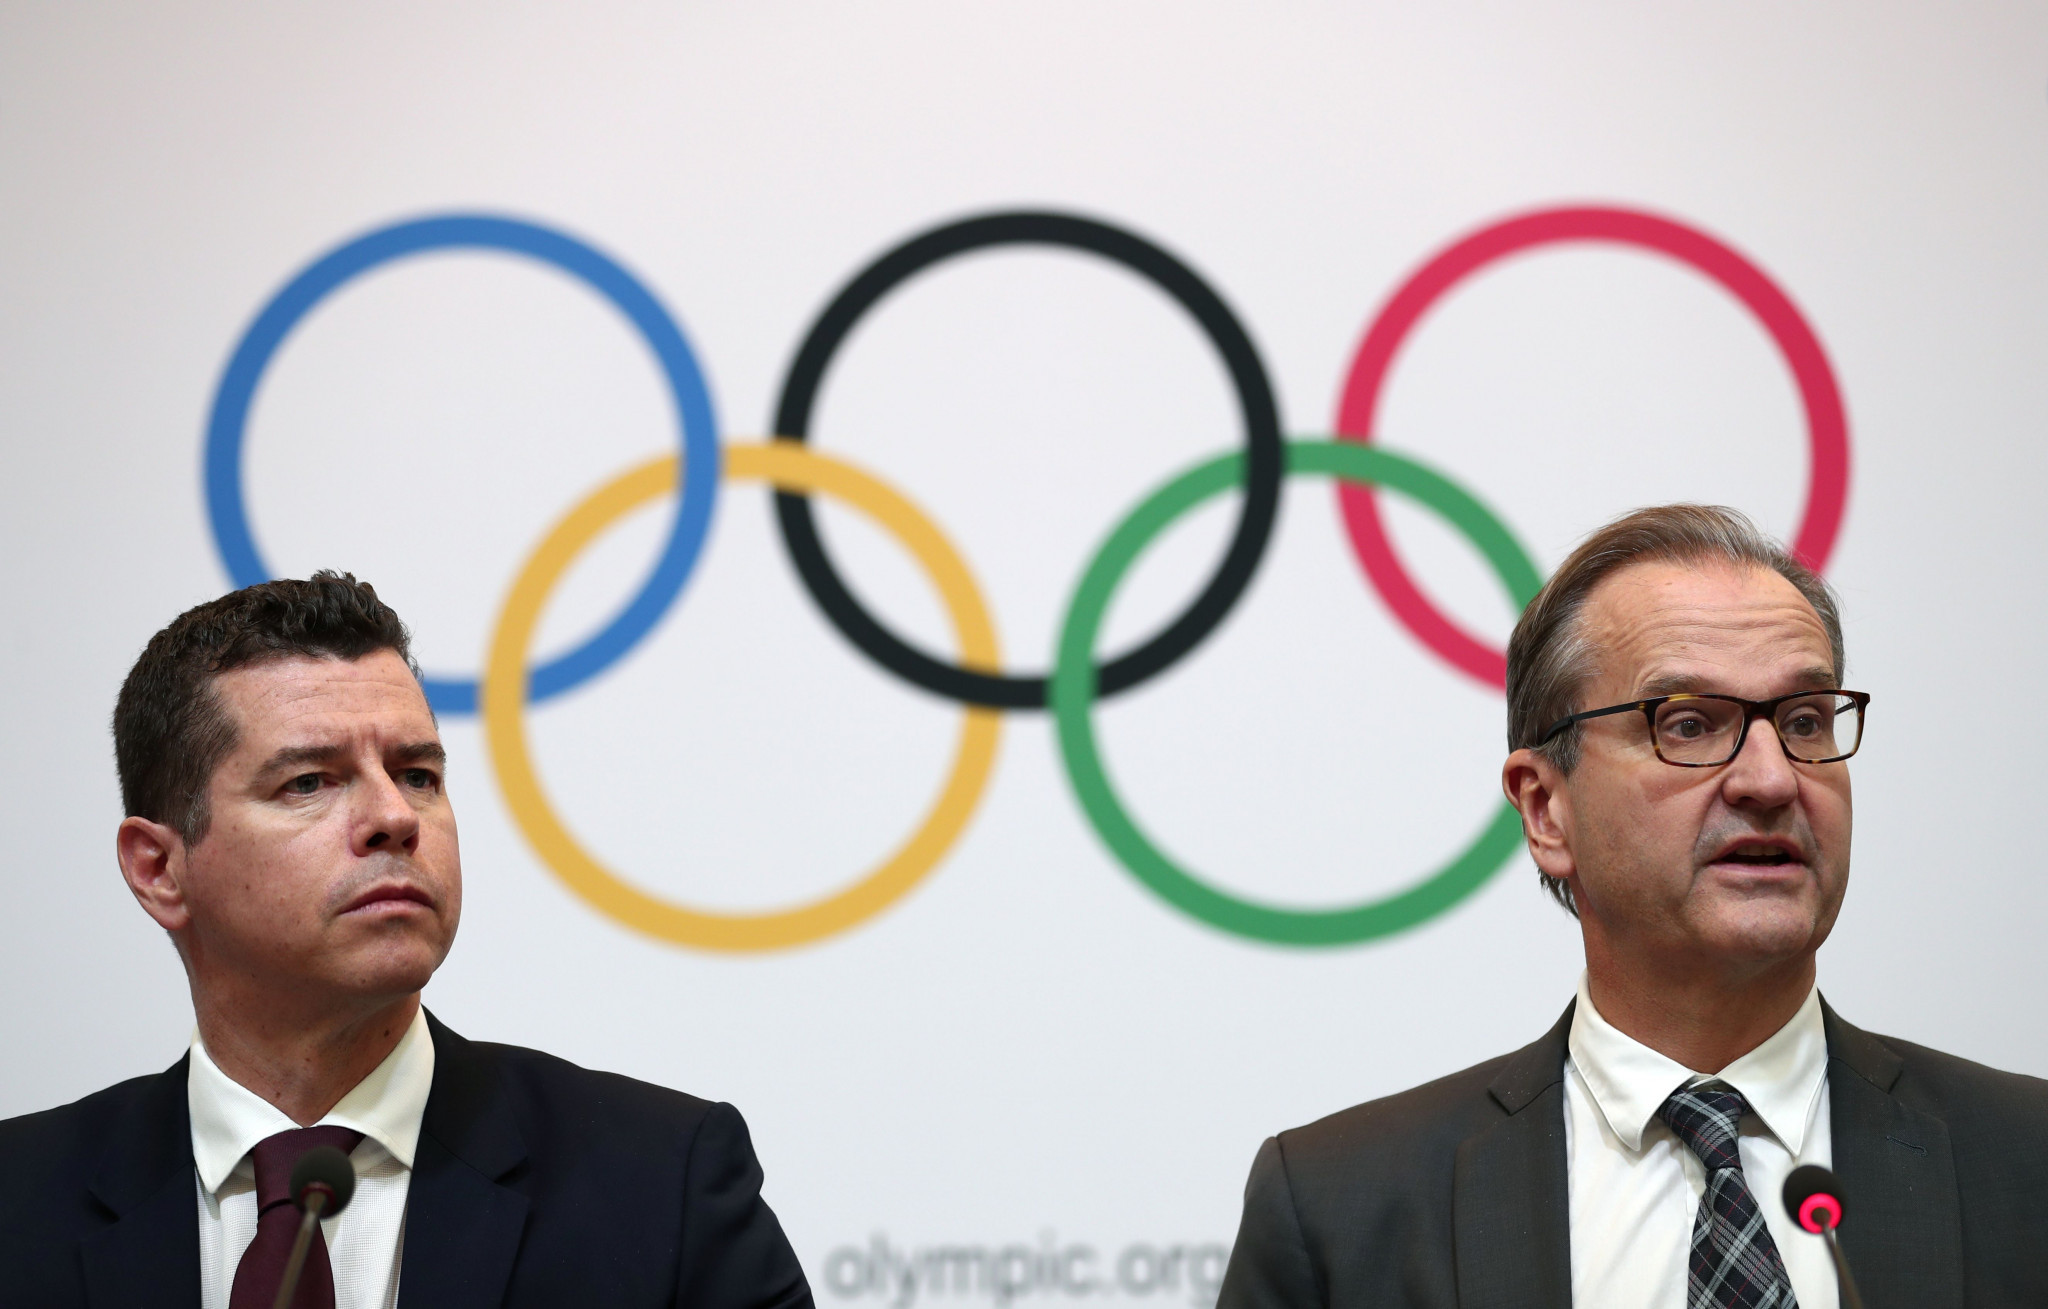 IOC sports director Kit McConnell, left, has promised athletes they would do everything they can to hold an Olympic boxing tournament at Tokyo 2020 even if AIBA do not organise it ©Getty Iages